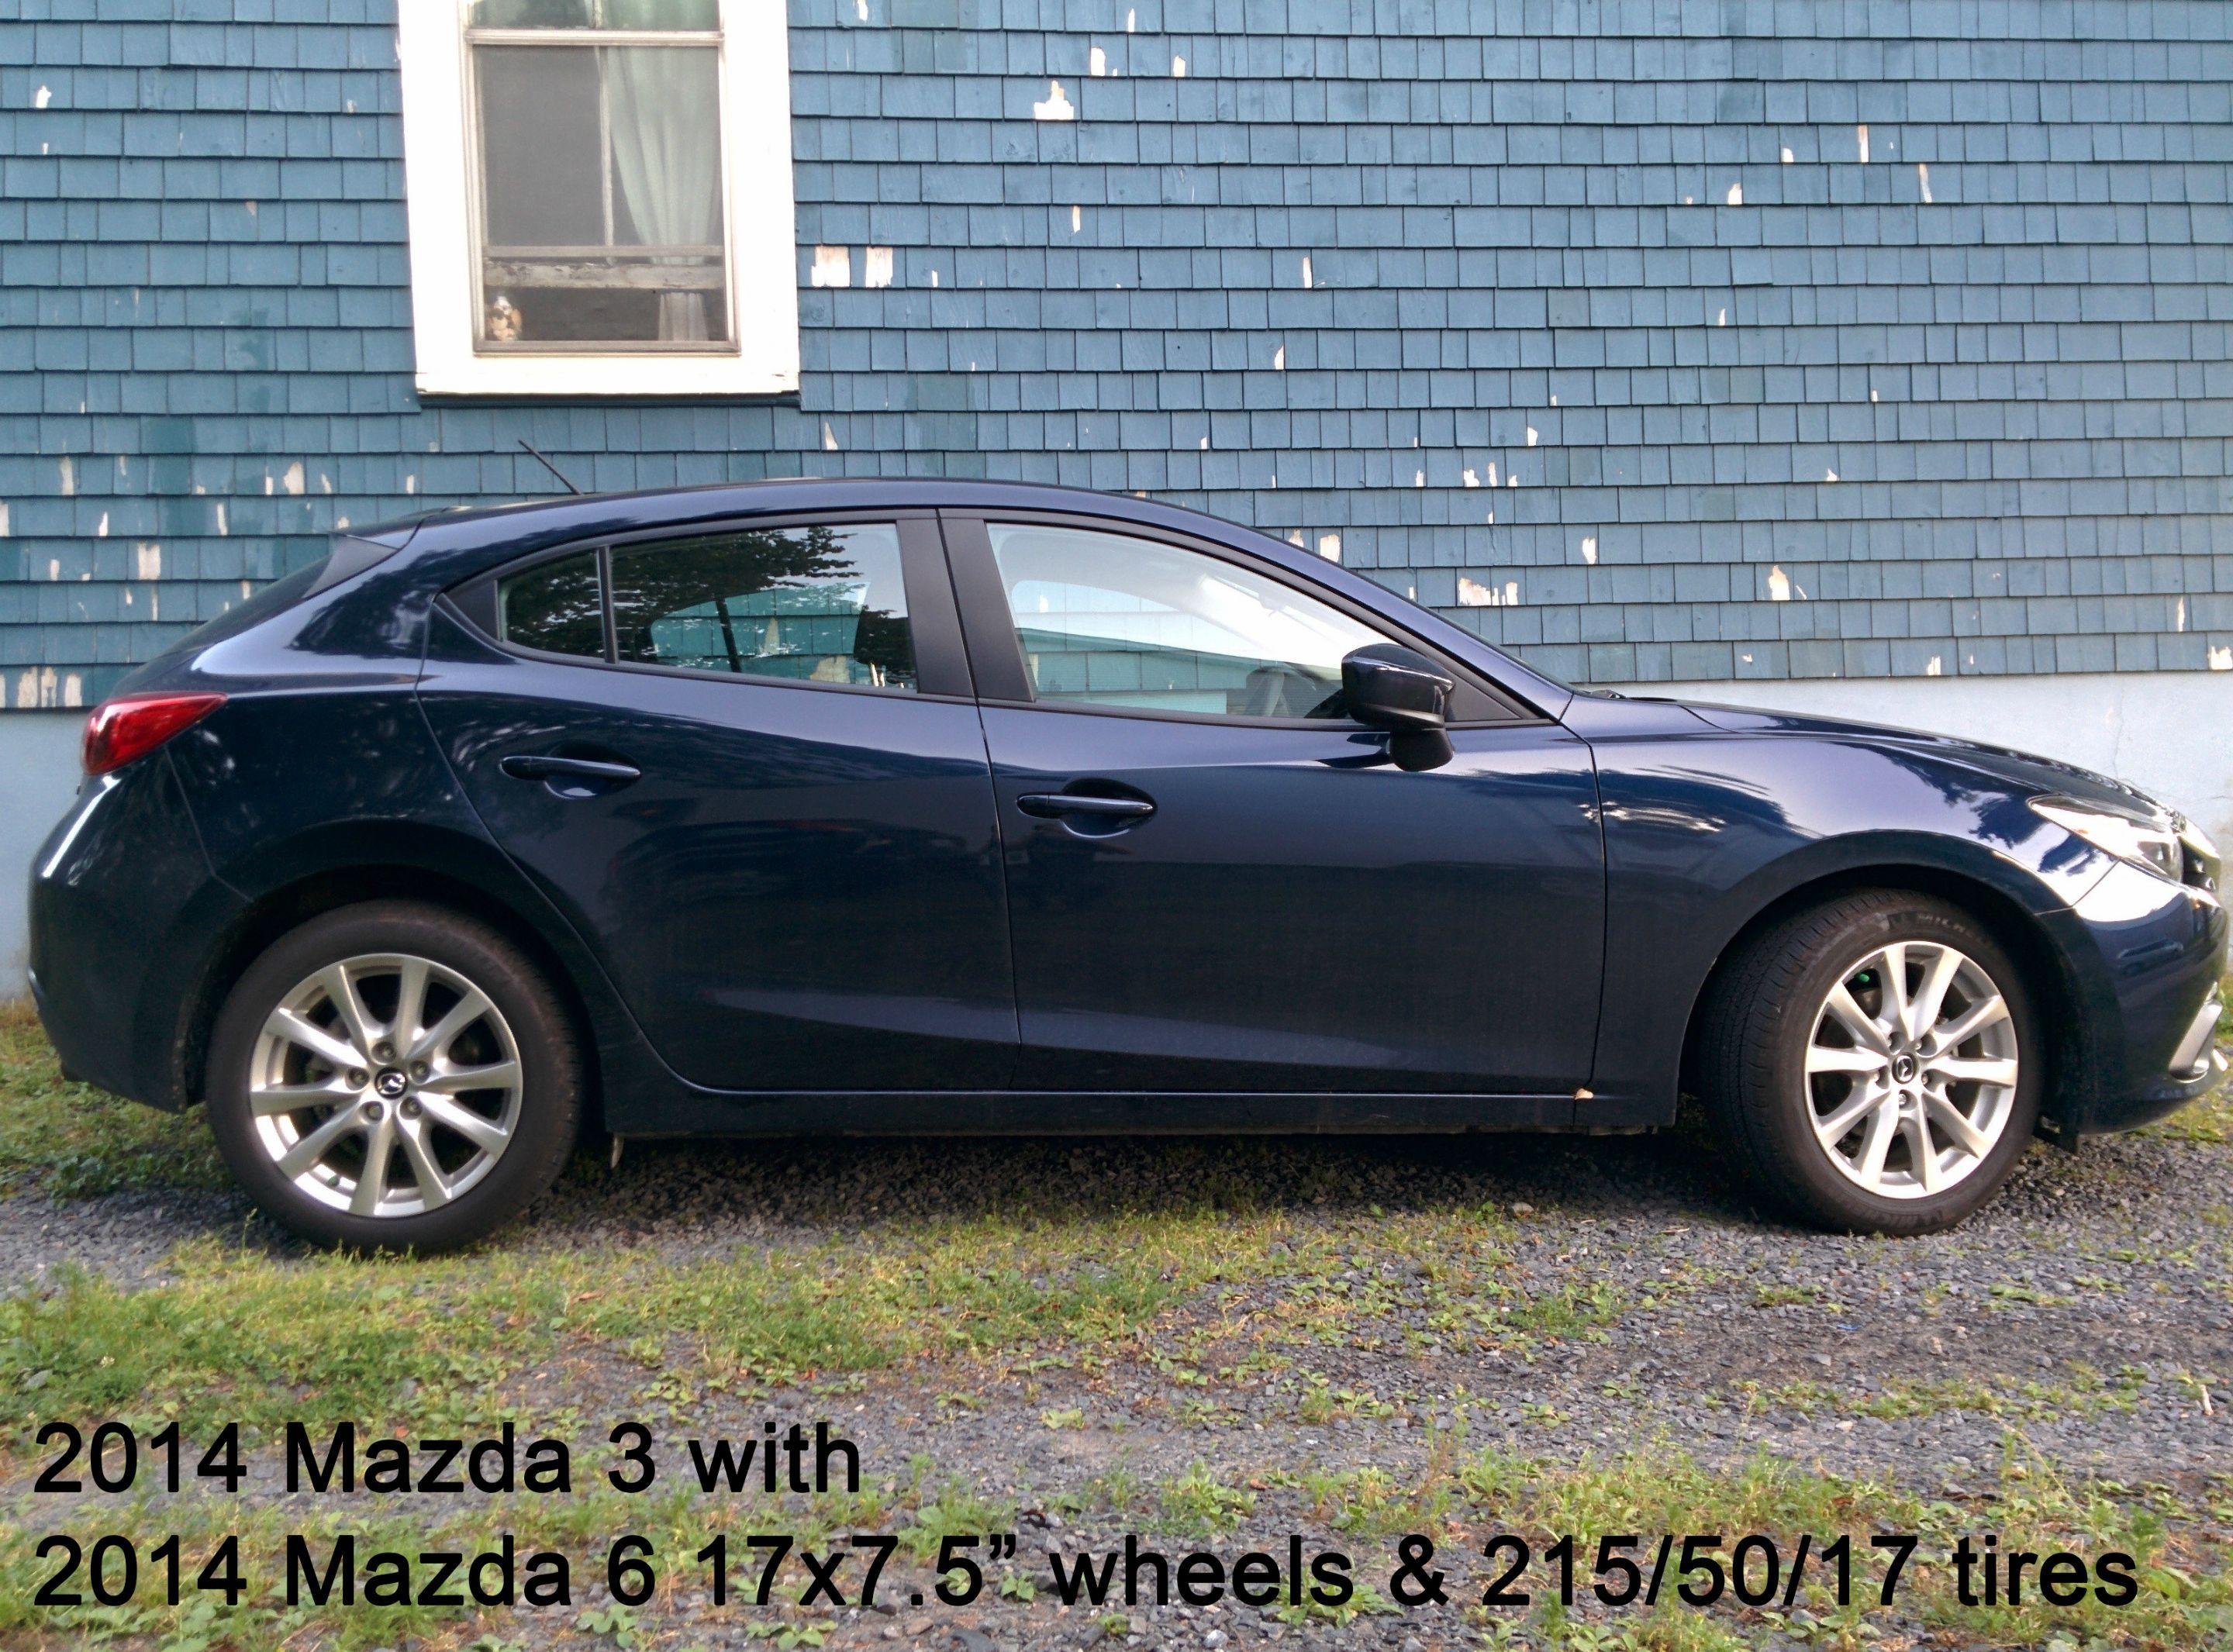 Mazda 6 found a oem wheel option 2004 to 2014 mazda 3 forum and mazdaspeed 3 forums